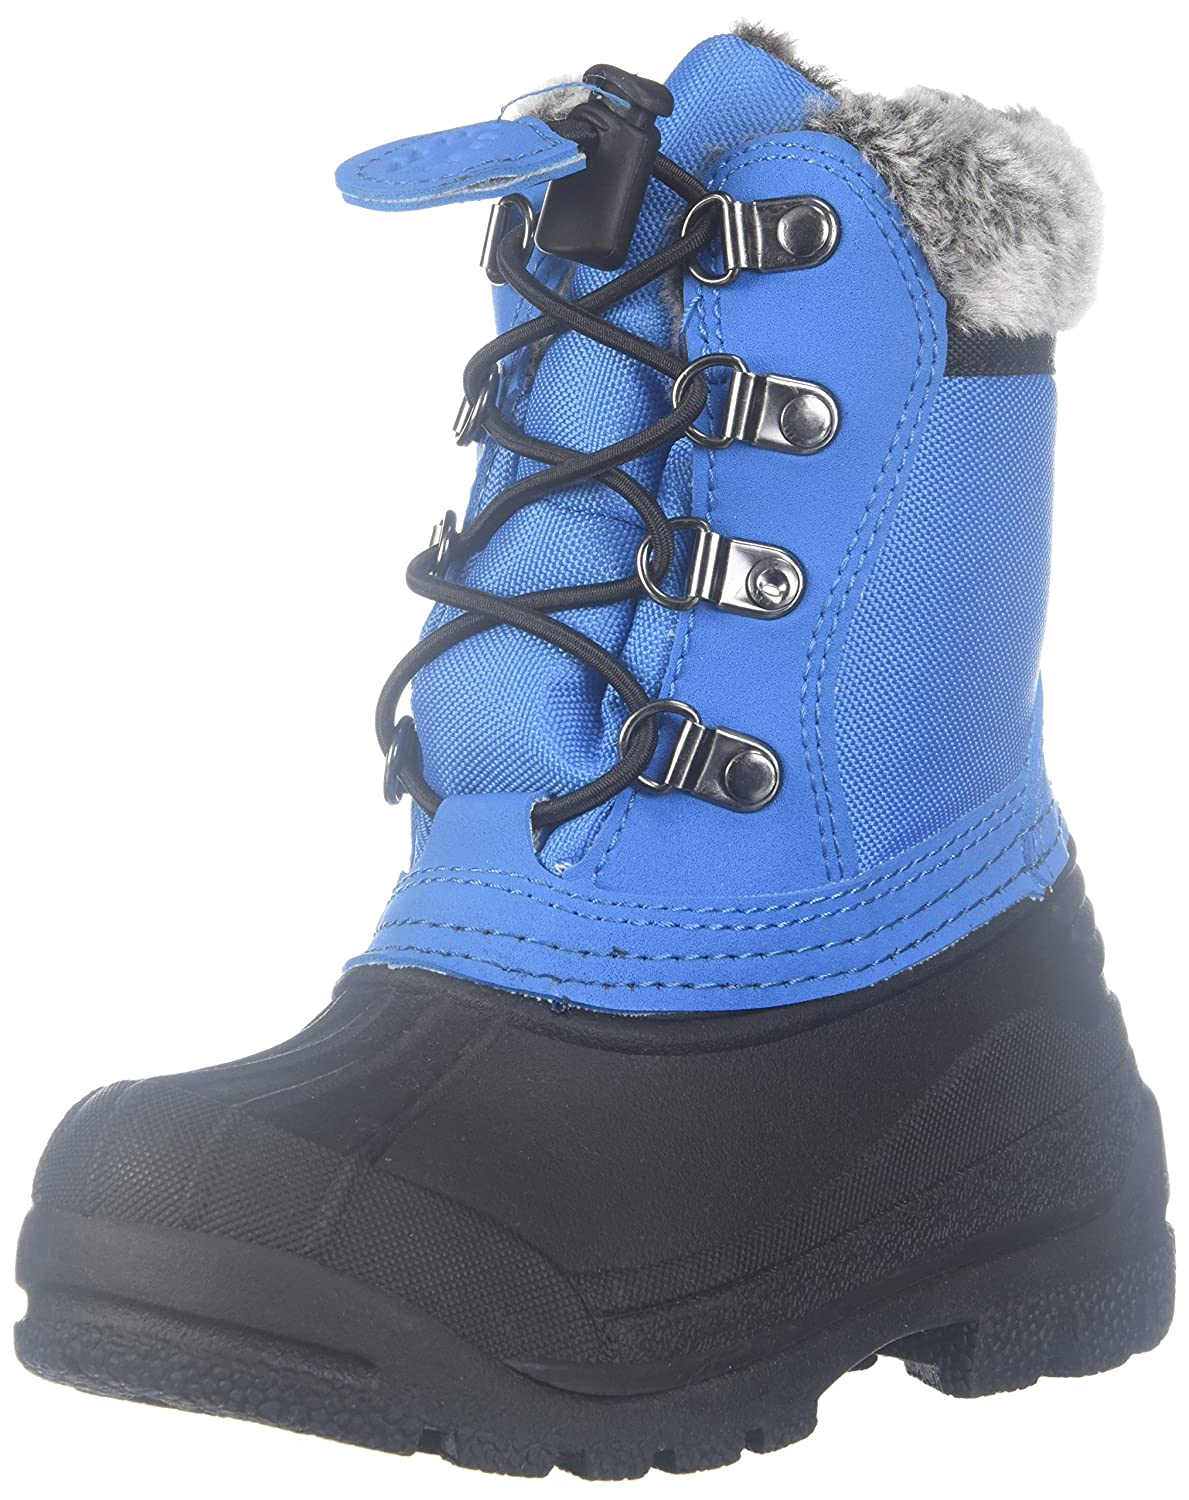 Oakiwear OAKI Kids Winter Snow Boots | Rubber, Waterproof, Insulated Cold Rating